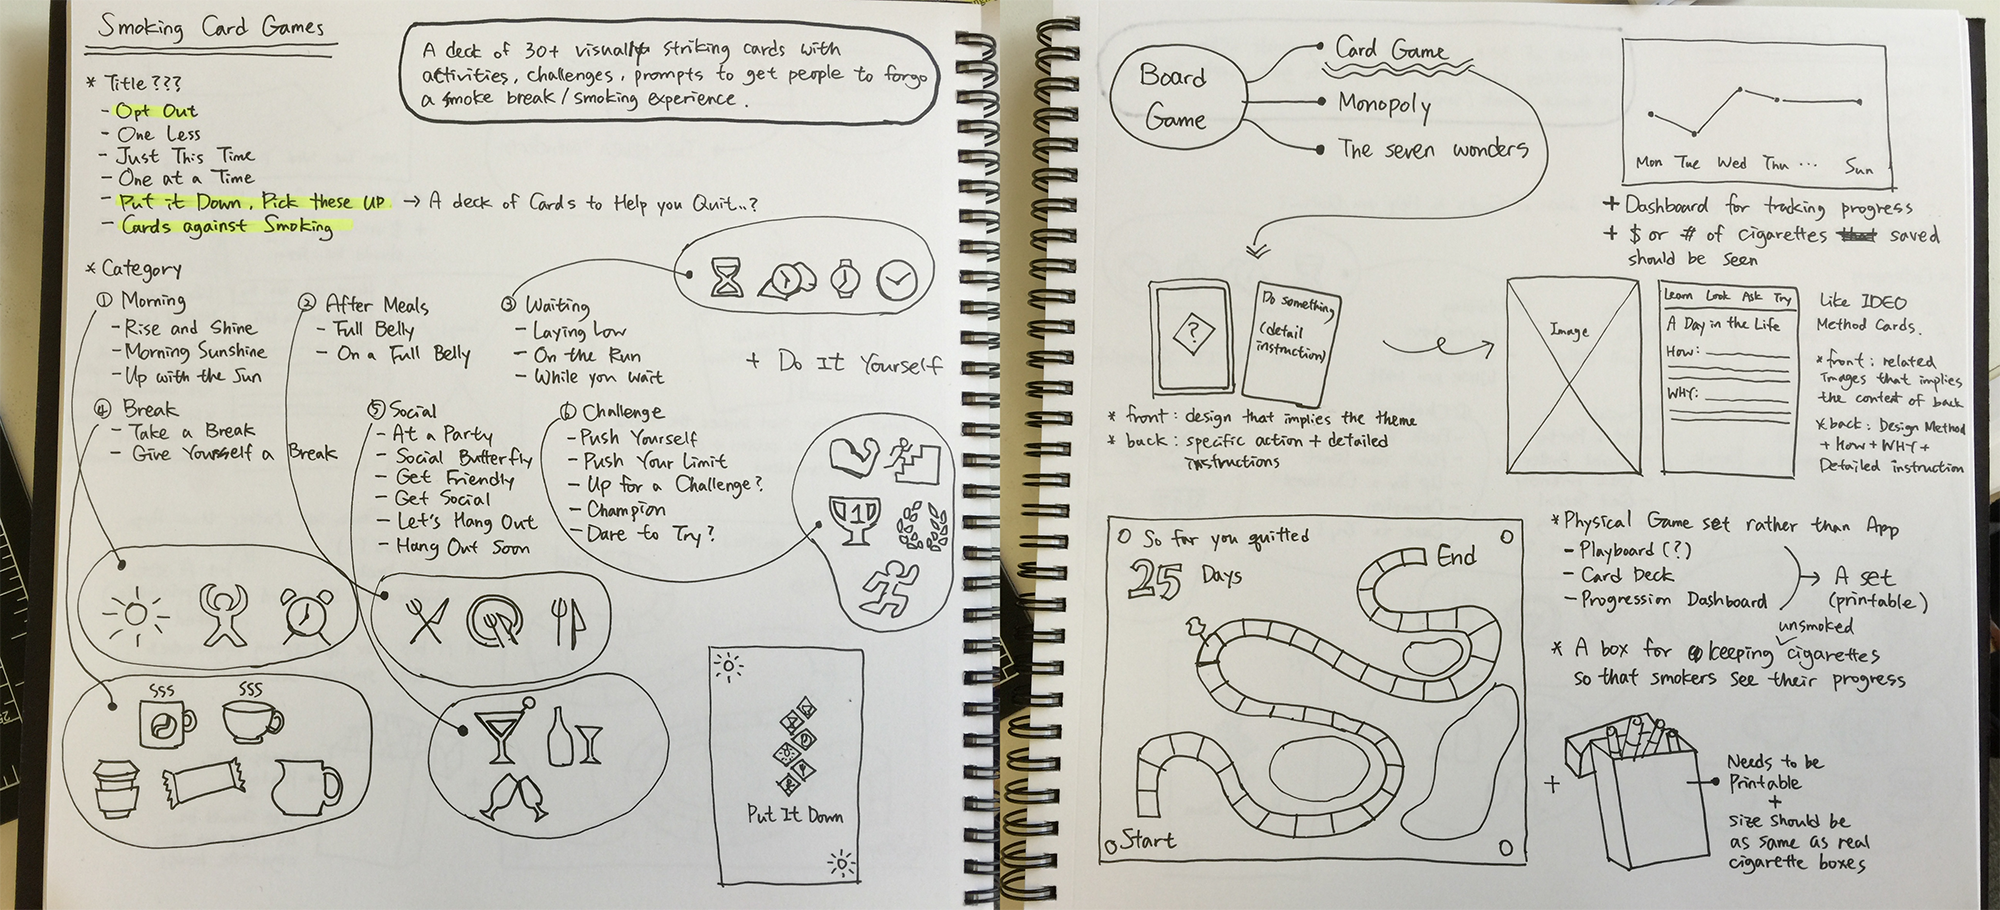 An initial idea sketch of Opt Out card games and its concept